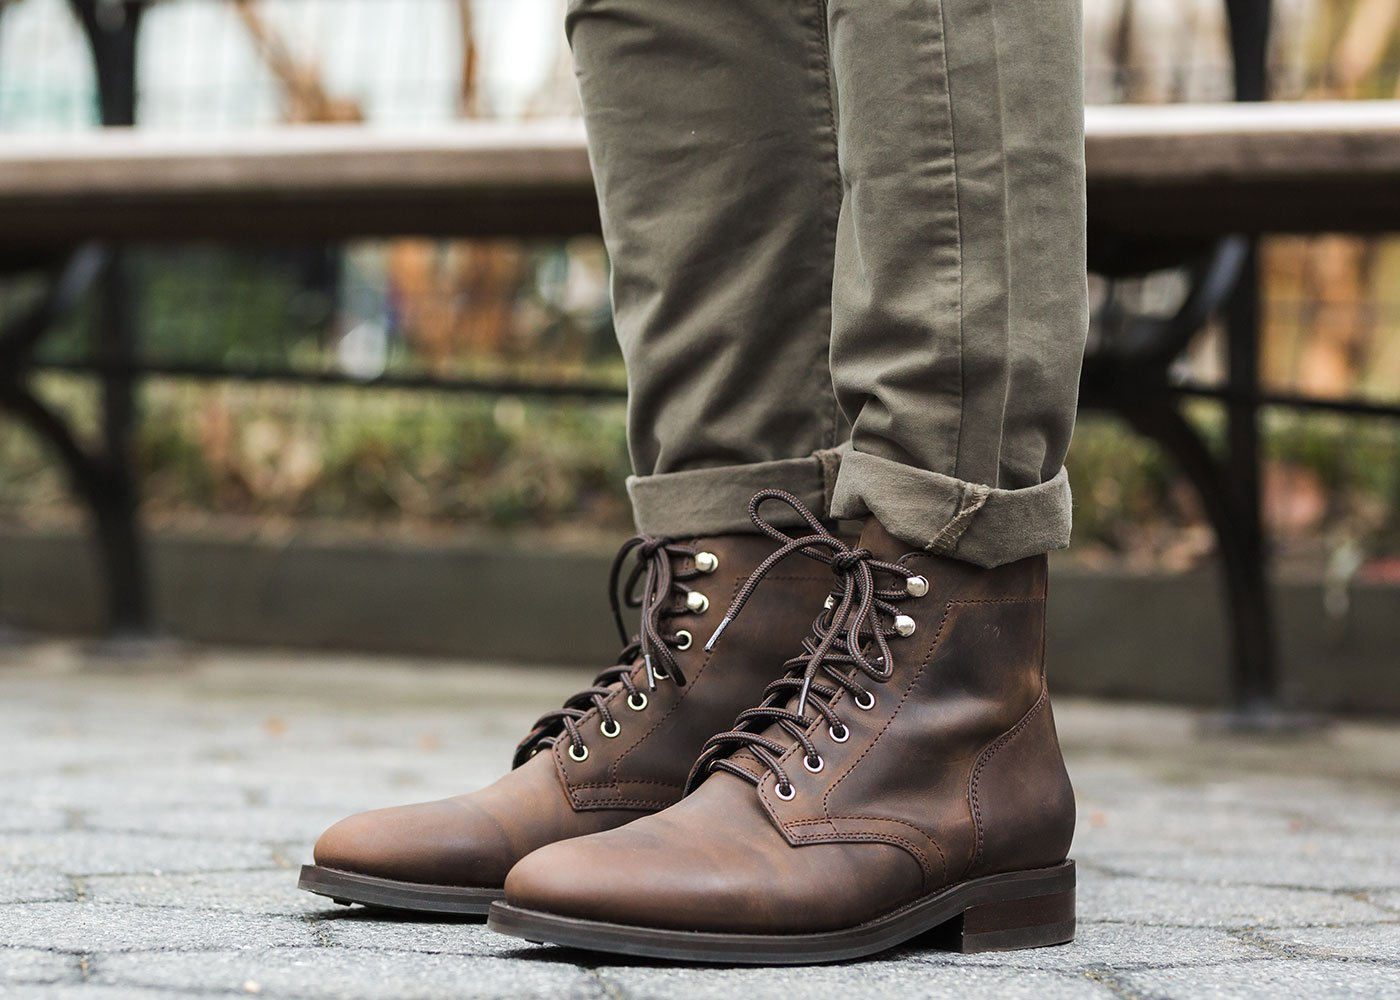 Men's Rugged Boots - Thursday Boot Company